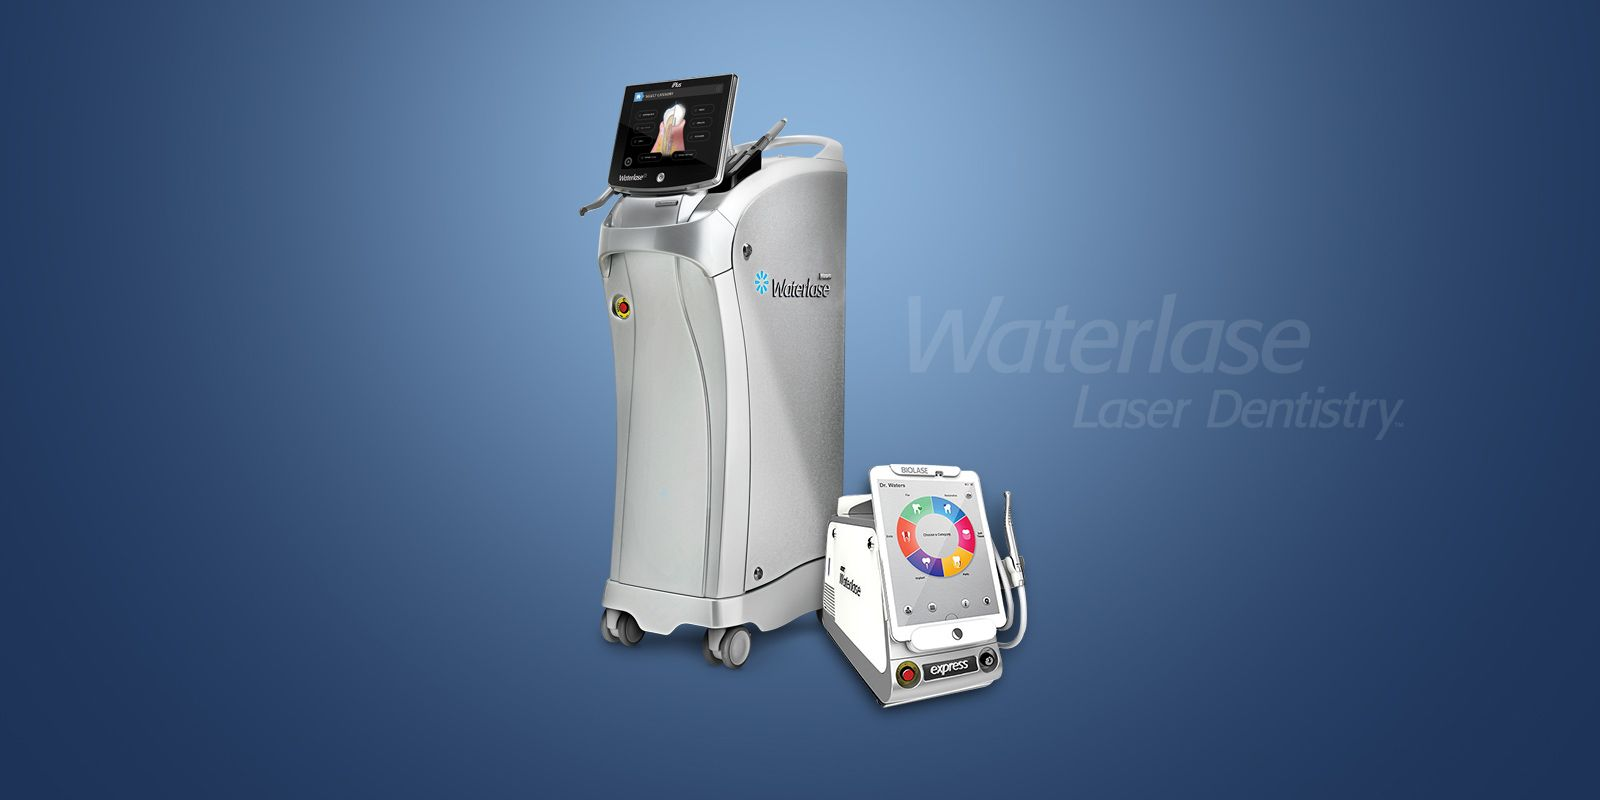 WaterLaser system